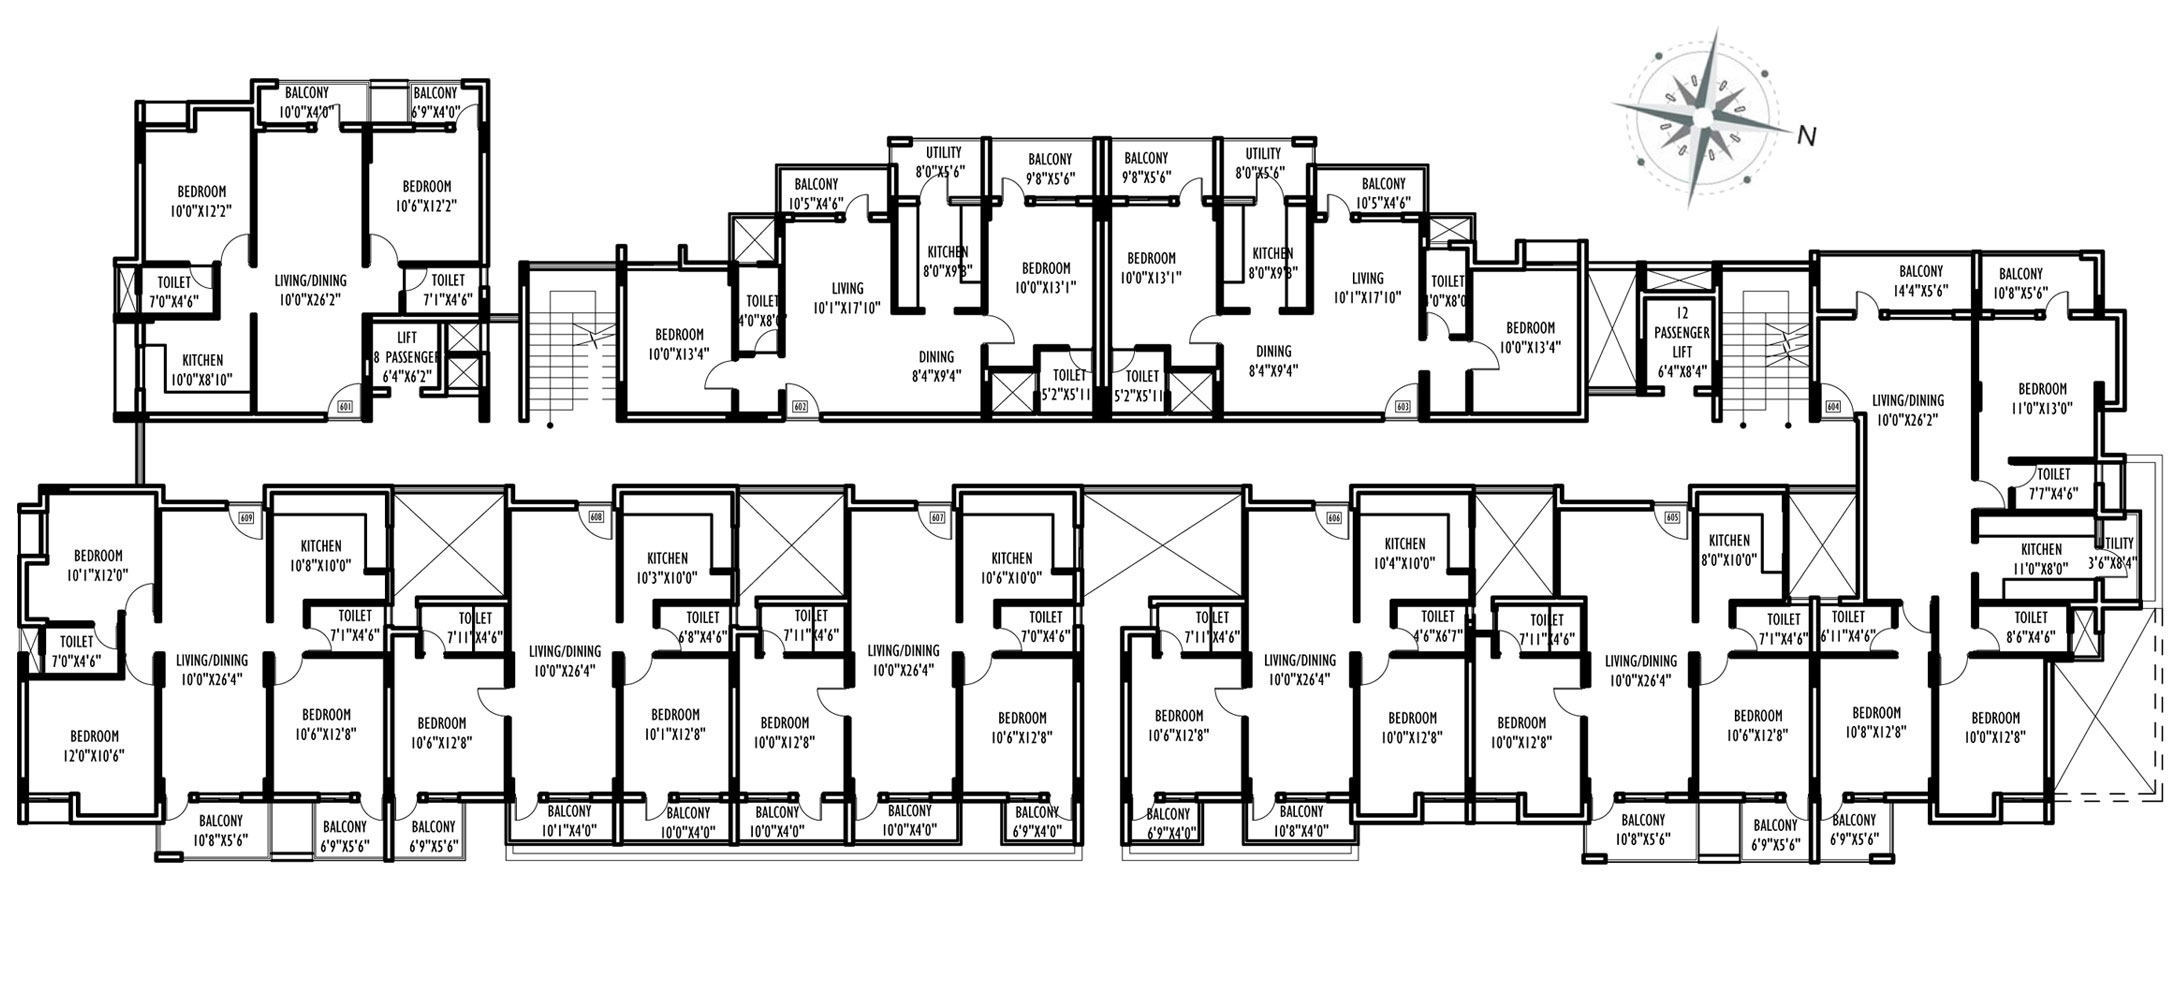 multi family compound house plans family compound floor plans lrg e97e0f3ddd74dfd8 - 10+ Small House Compound Design  Images